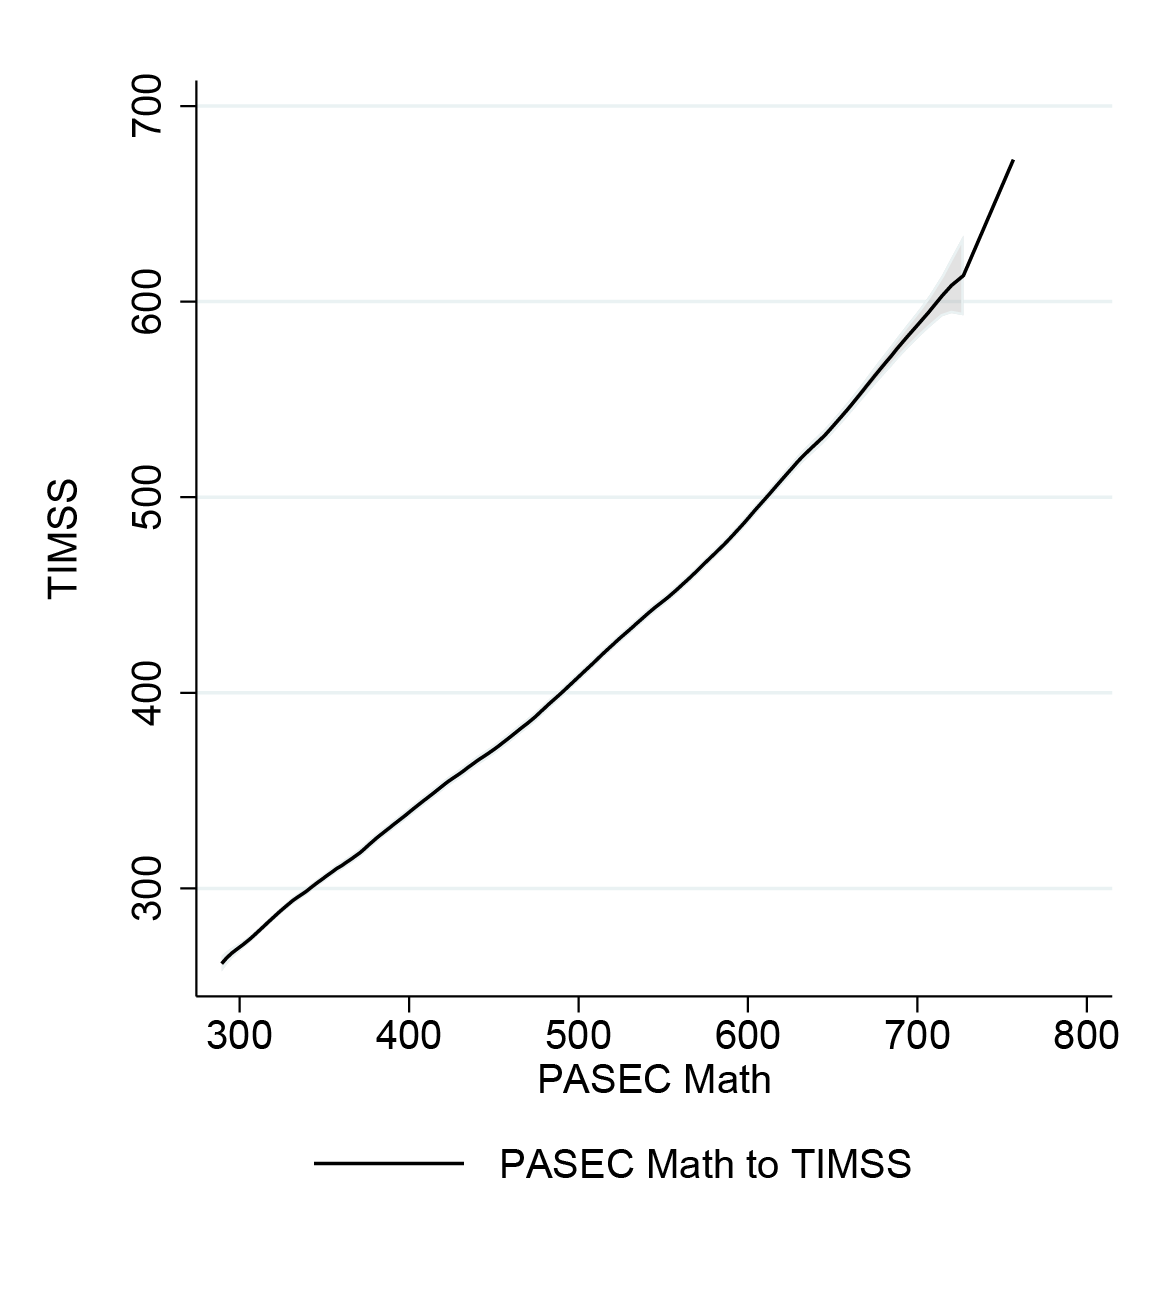 Chart showing the conversion between PASEC math and TIMSS as a fairly straight line, with a PASEC score of 400 corresponding to a TIMSS score of about 330 and a PASEC of 700 corresponding to about 600